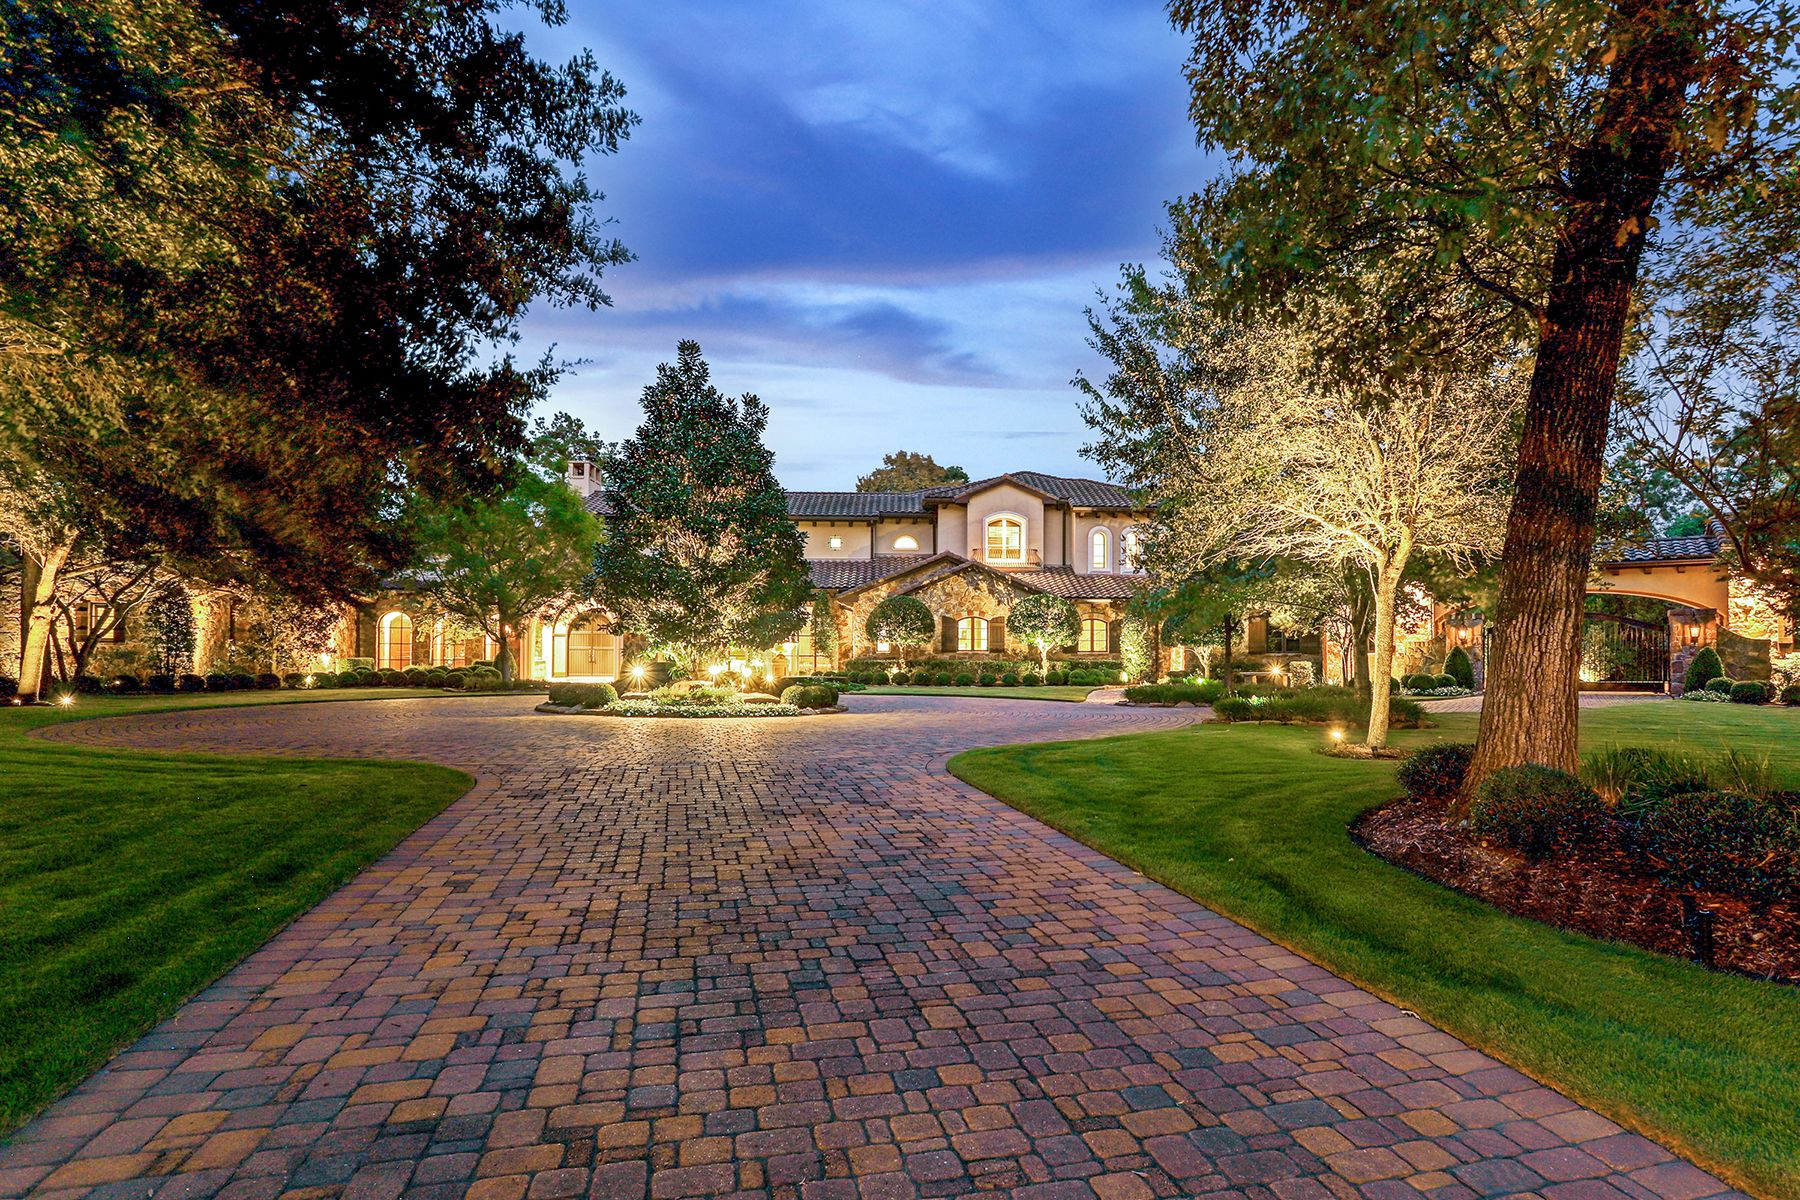 Single Family Homes for Sale at 19 Congressional Circle The Woodlands, Texas 77389 United States